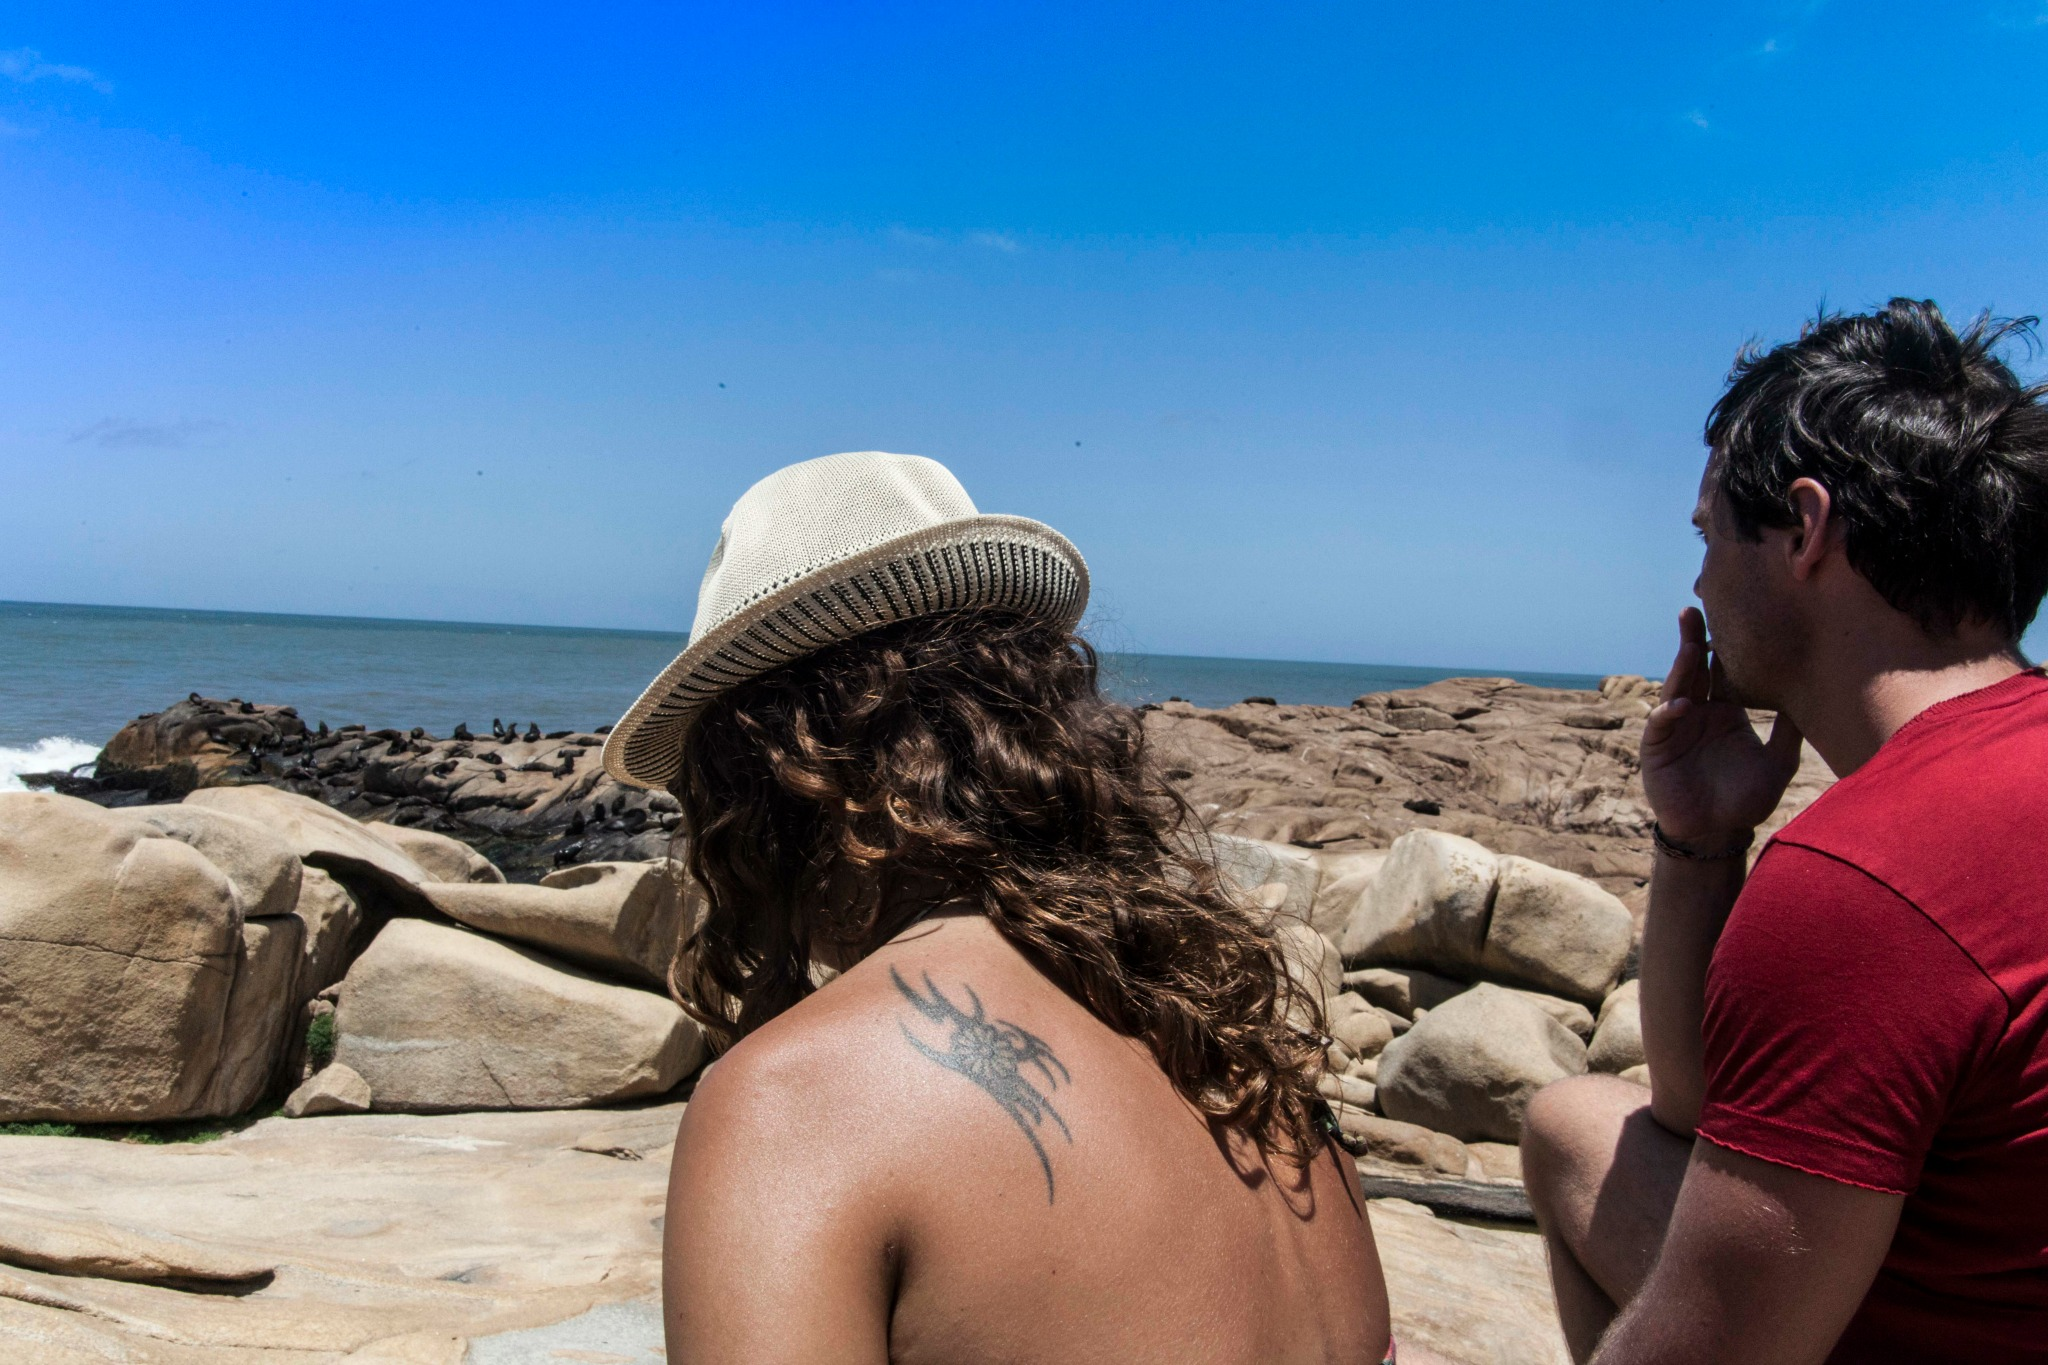 My friends admiring the sea mammals. Photo by Francois